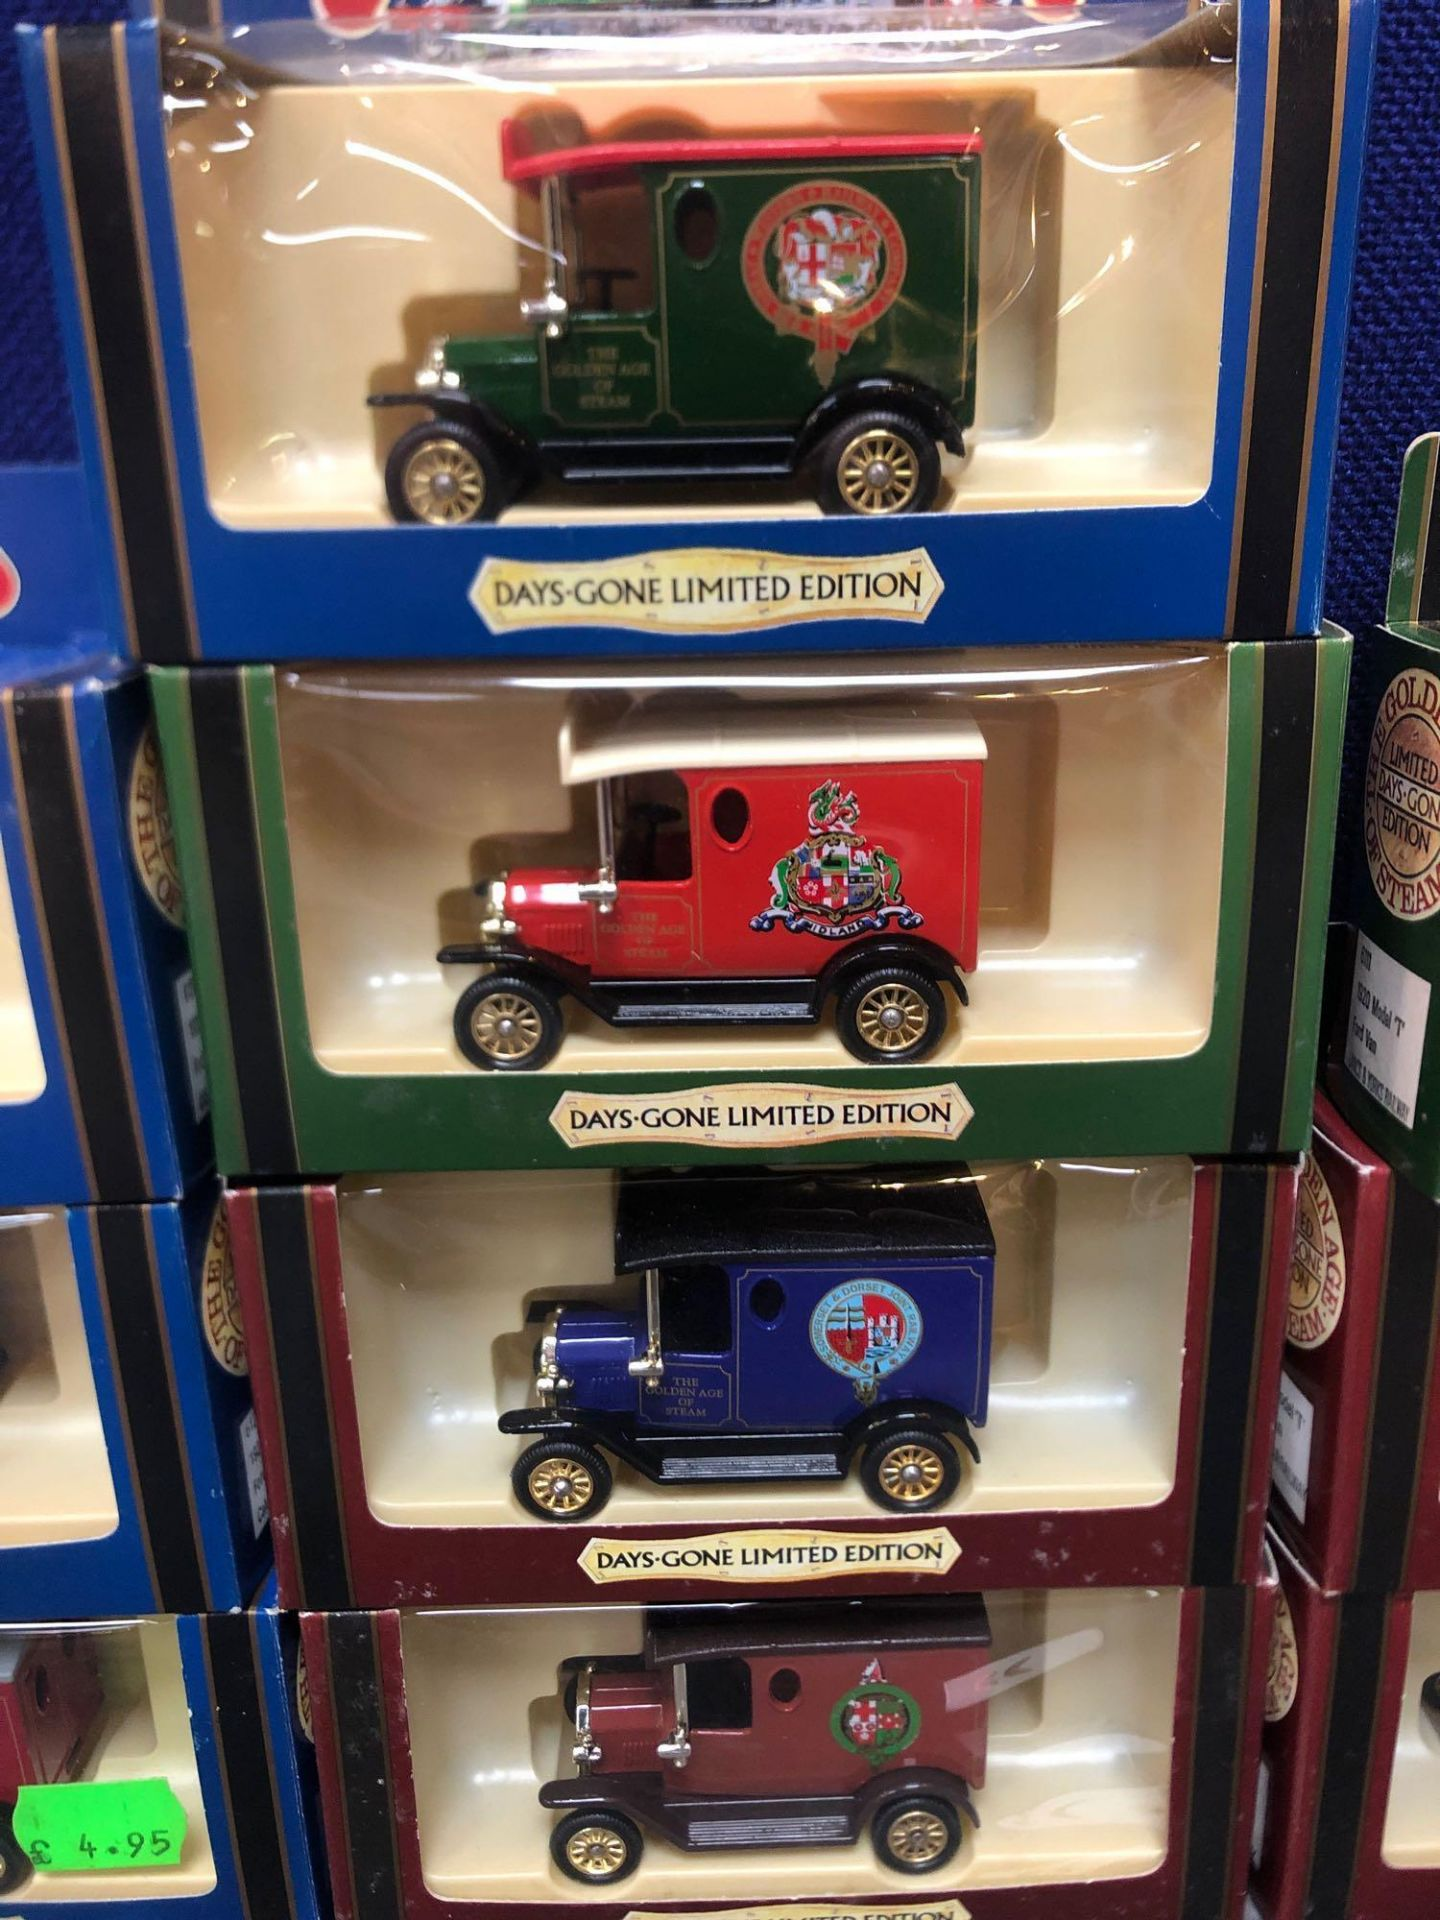 10x Diecast The Days Gone Limited Edition The Golden Age Of Steam Vehicles In Boxes - Image 3 of 4